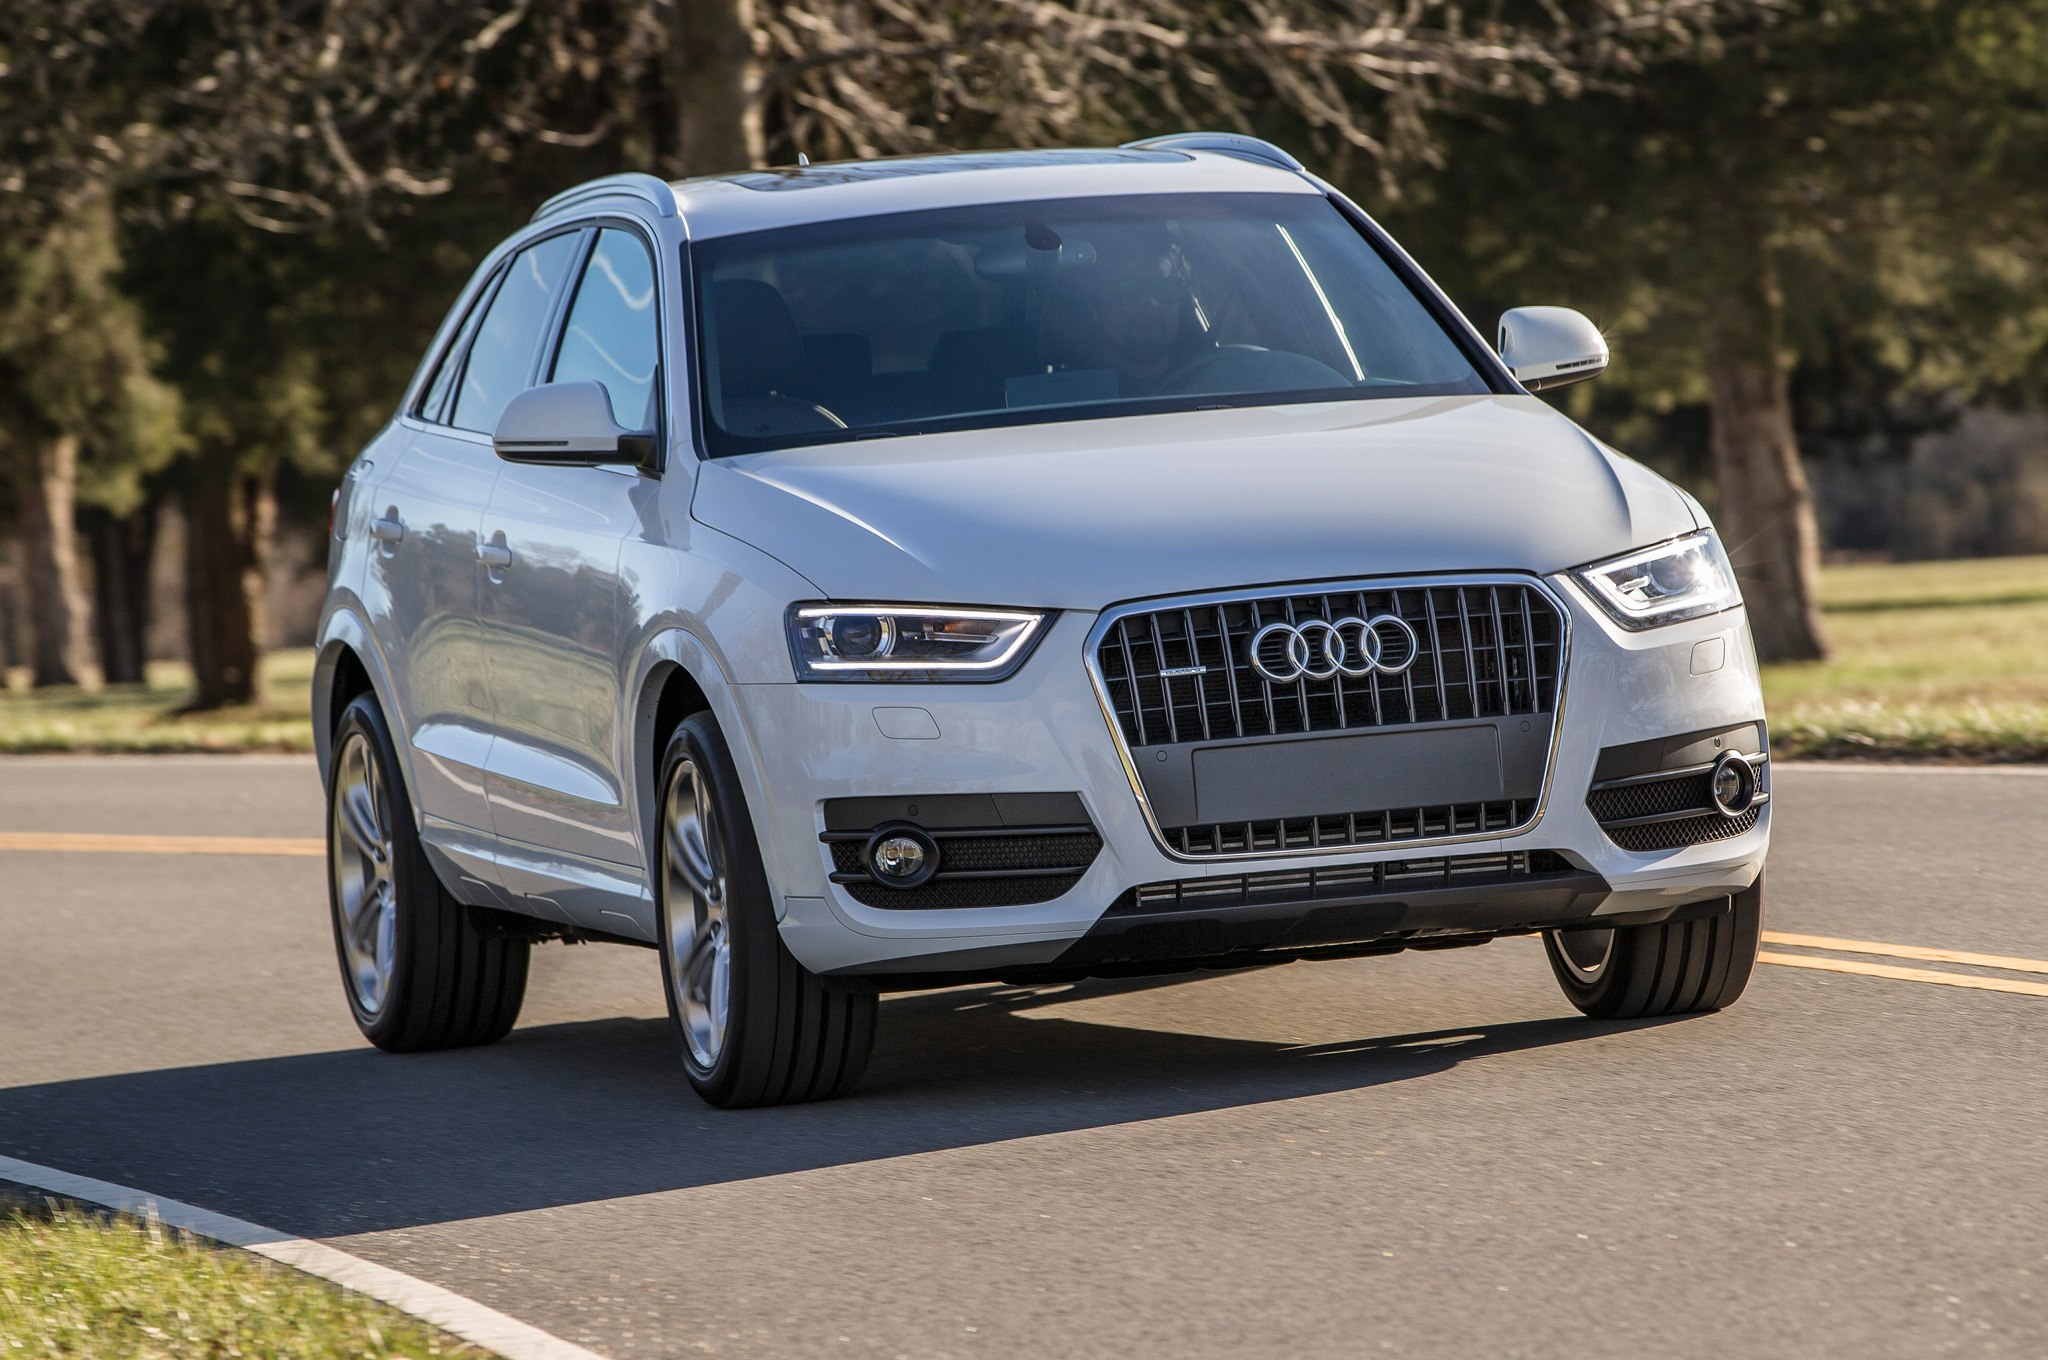 2015 Audi Q3 Road Test View (Photo 15 of 21)